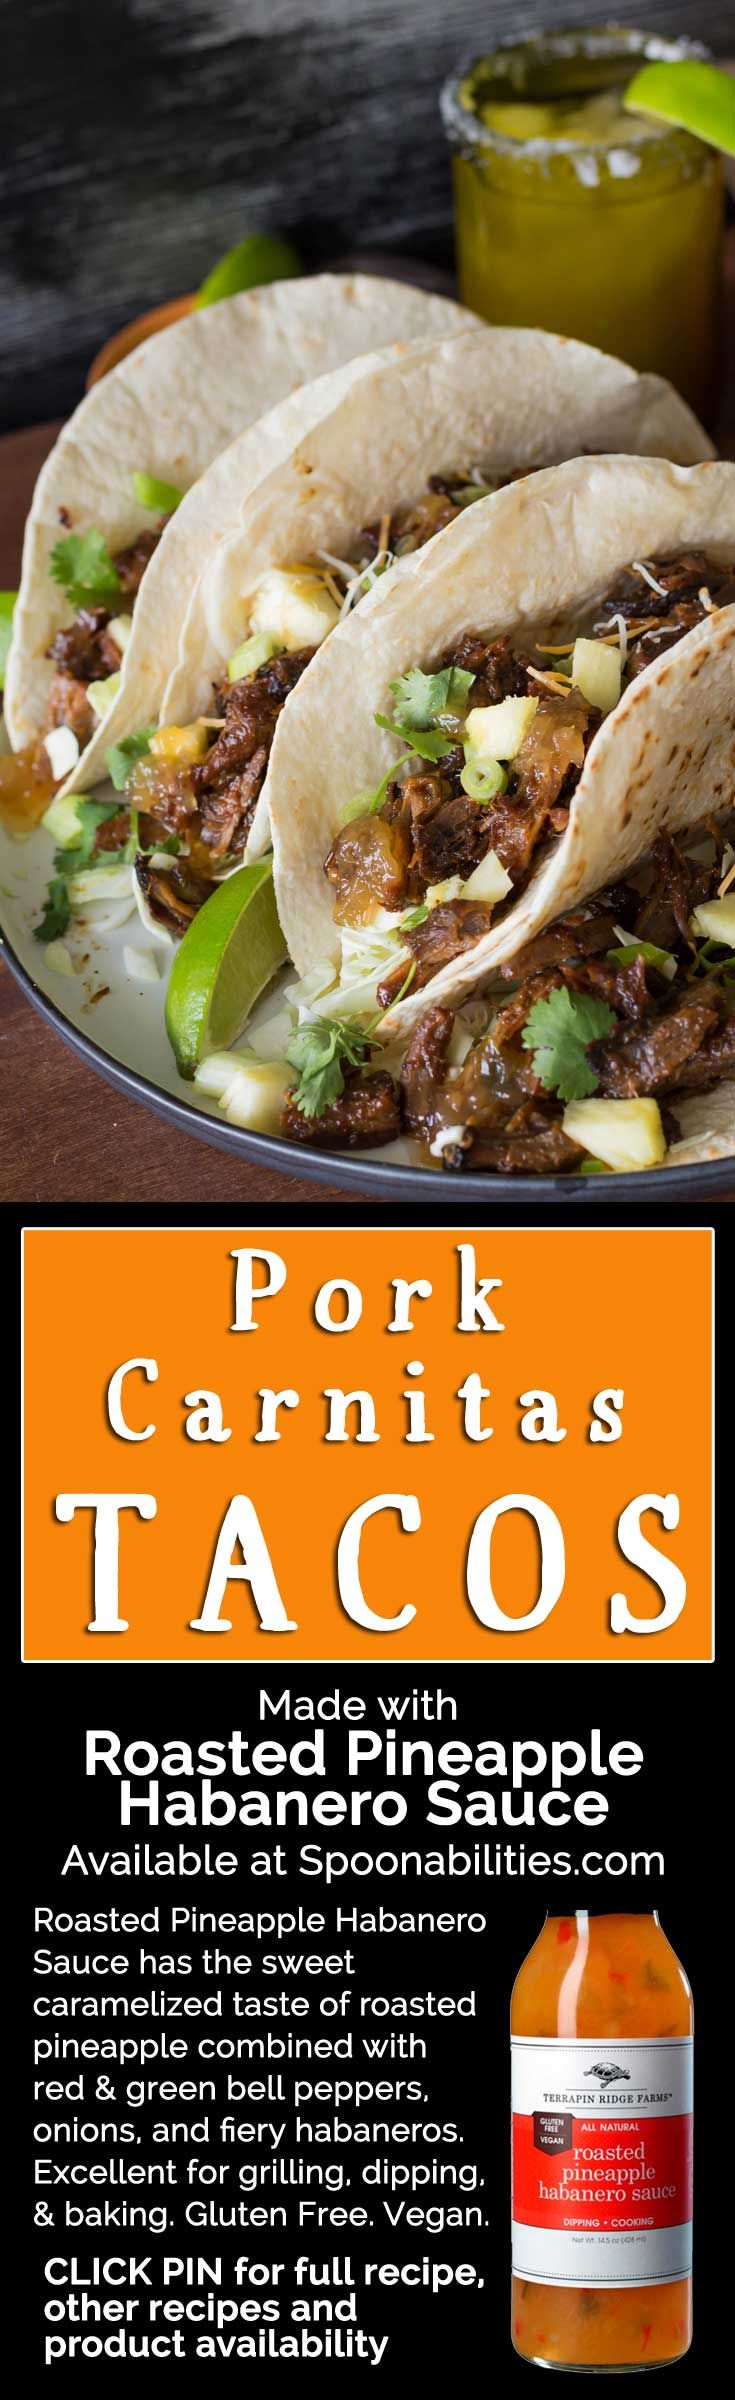 Slow braised Pork Carnitas as a filling for tacos. Pork braised with Roasted Pineapple Habanero Sauce from Terrapin Ridge Farms. Spoonabilities.com via @Spoonabilities